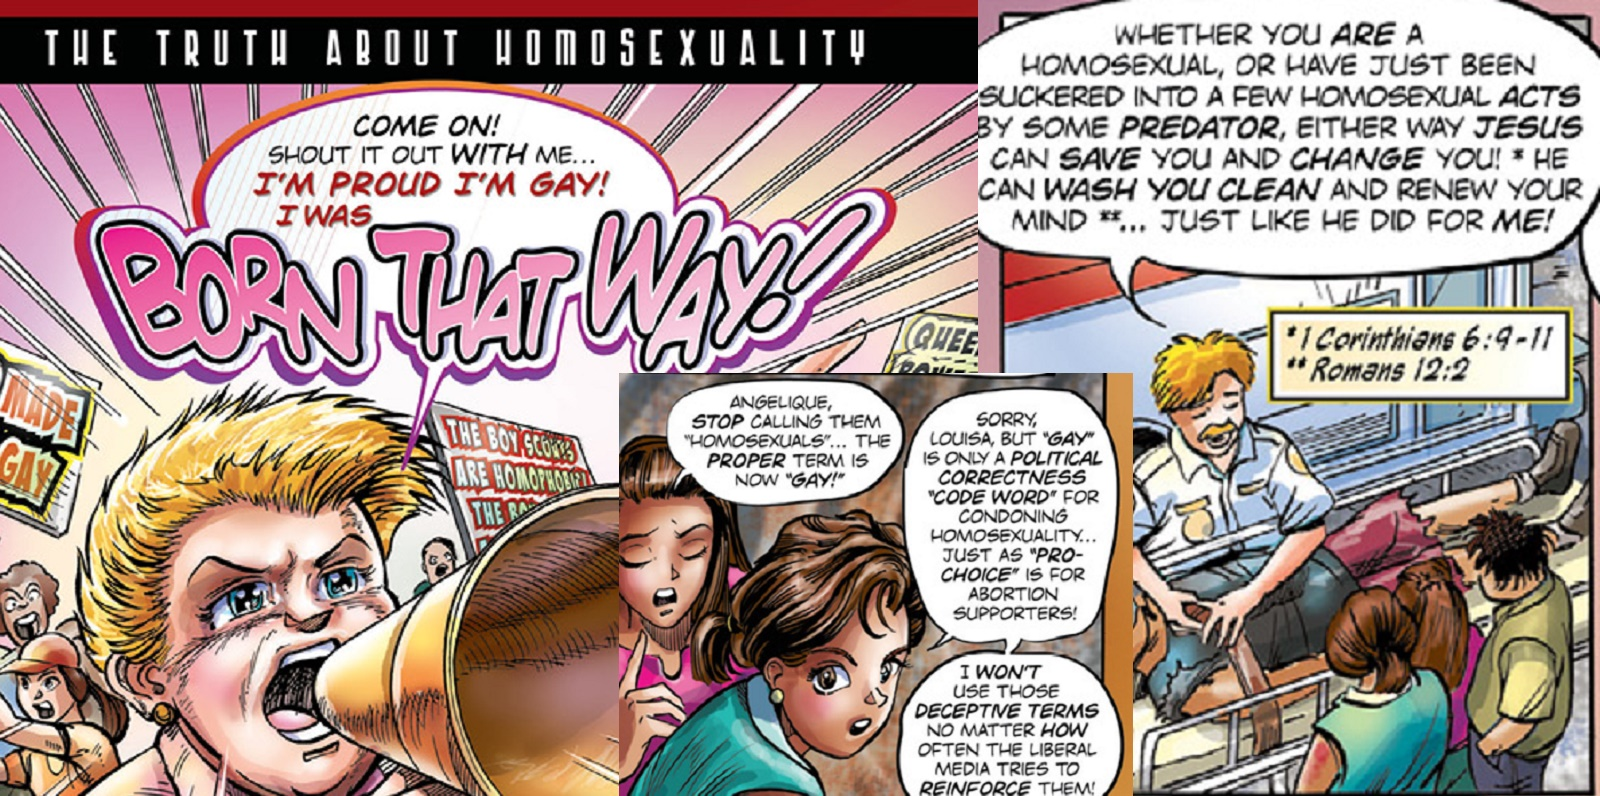 Christian Groups Are Handing Out These Creepy Gay Cure Comics To Children  C2 B7 Pinknews